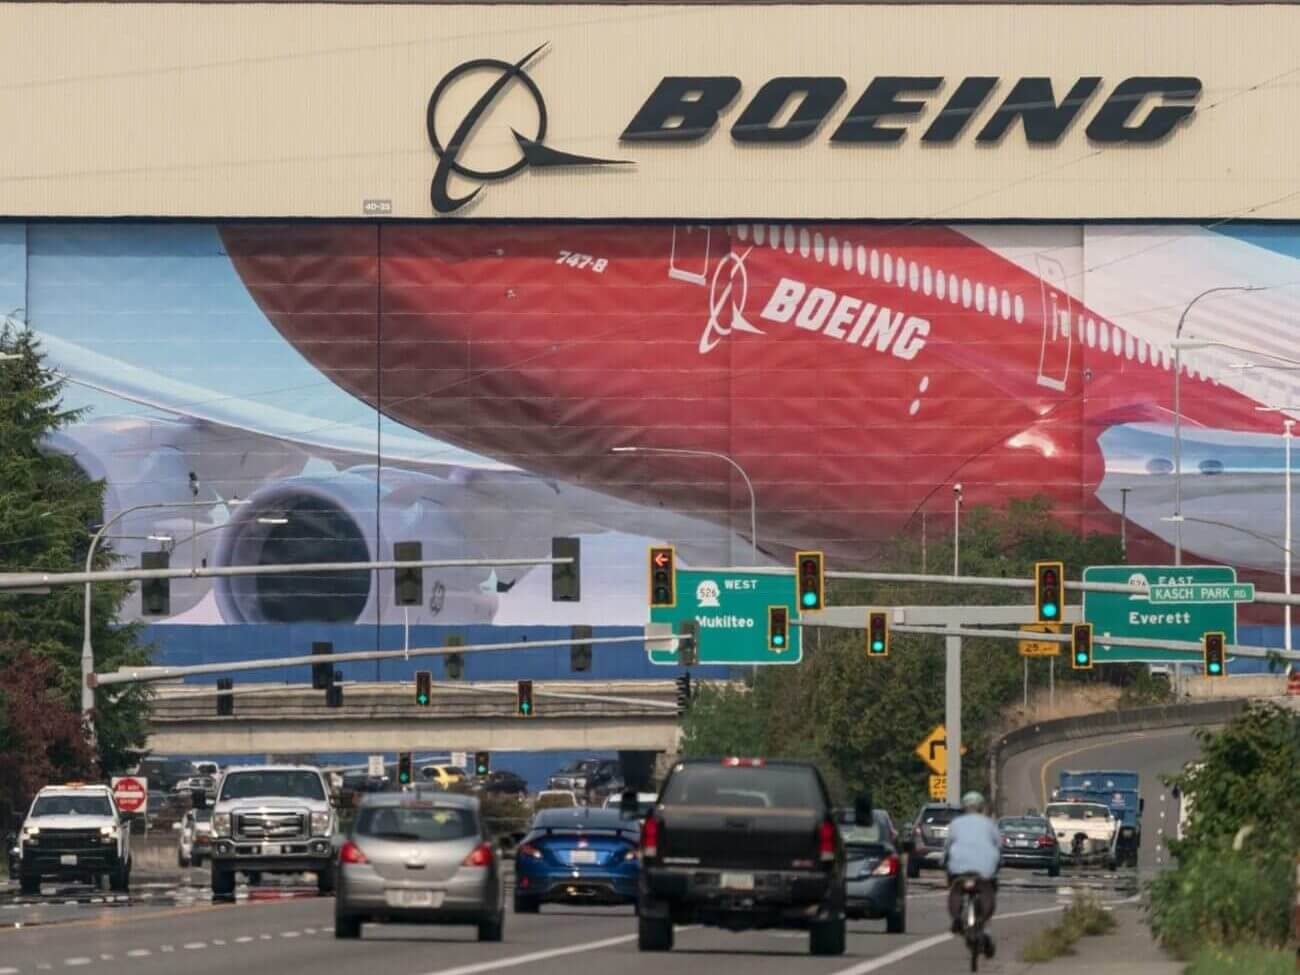 Boeing Is the Most recent Company to Gain away a Hostile Industry Environment